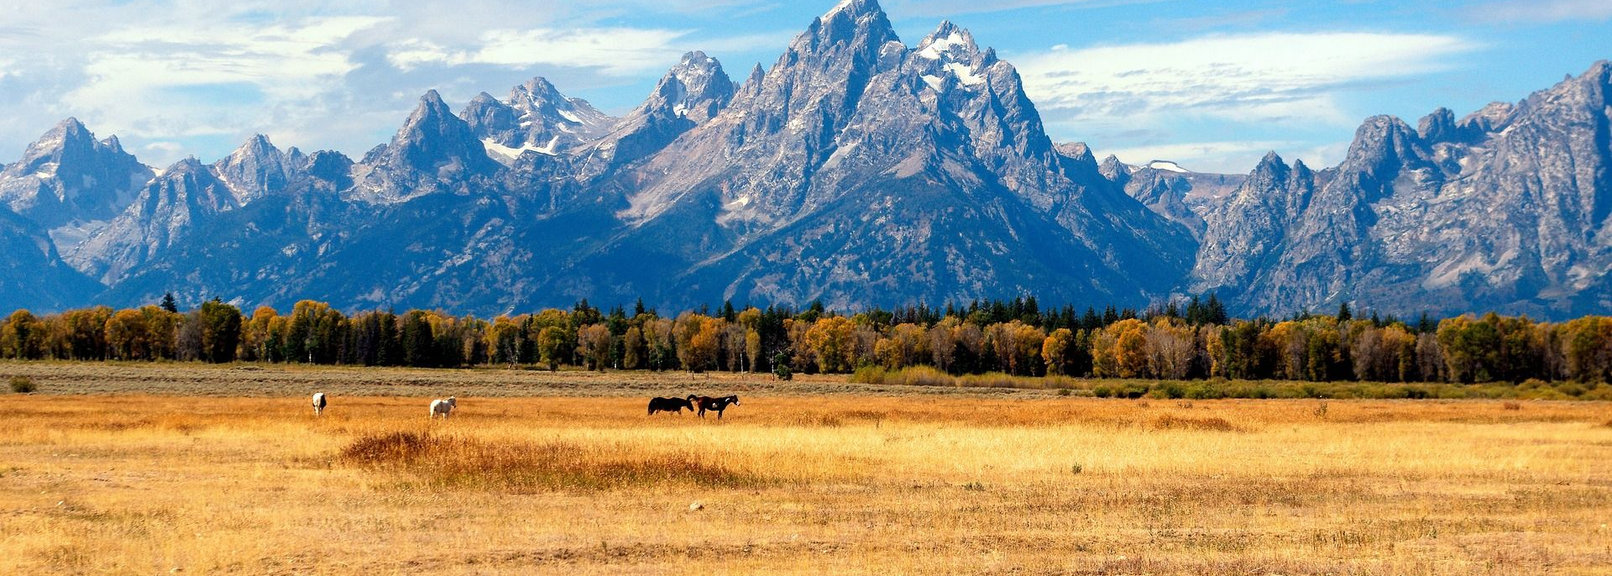 grand-tetons-in-the-fall-3857341_1920-co